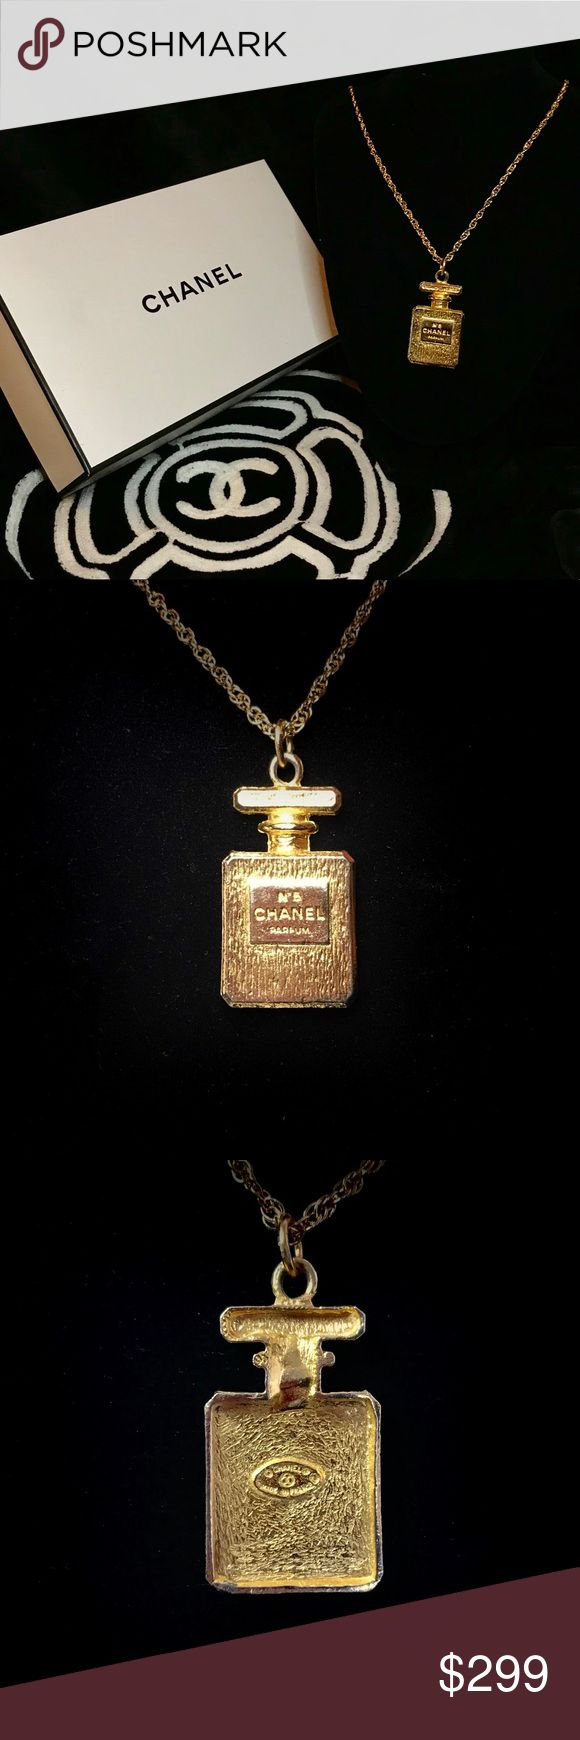 """Authentic Vintage CHANEL Pendant Necklace w/ Box 👉TRADE VALUE: $500👈  ✨ EXCELLENT VINTAGE CONDITION Authentic Vintage Stamped CHANEL No.5 Bottle Pendant mounted on a 36"""" gold chain. Pendant measures 1"""" x 2"""".  ✨ Includes CHANEL Keepsake Box (box has a few faint marks on top). CHANEL Jewelry Necklaces"""